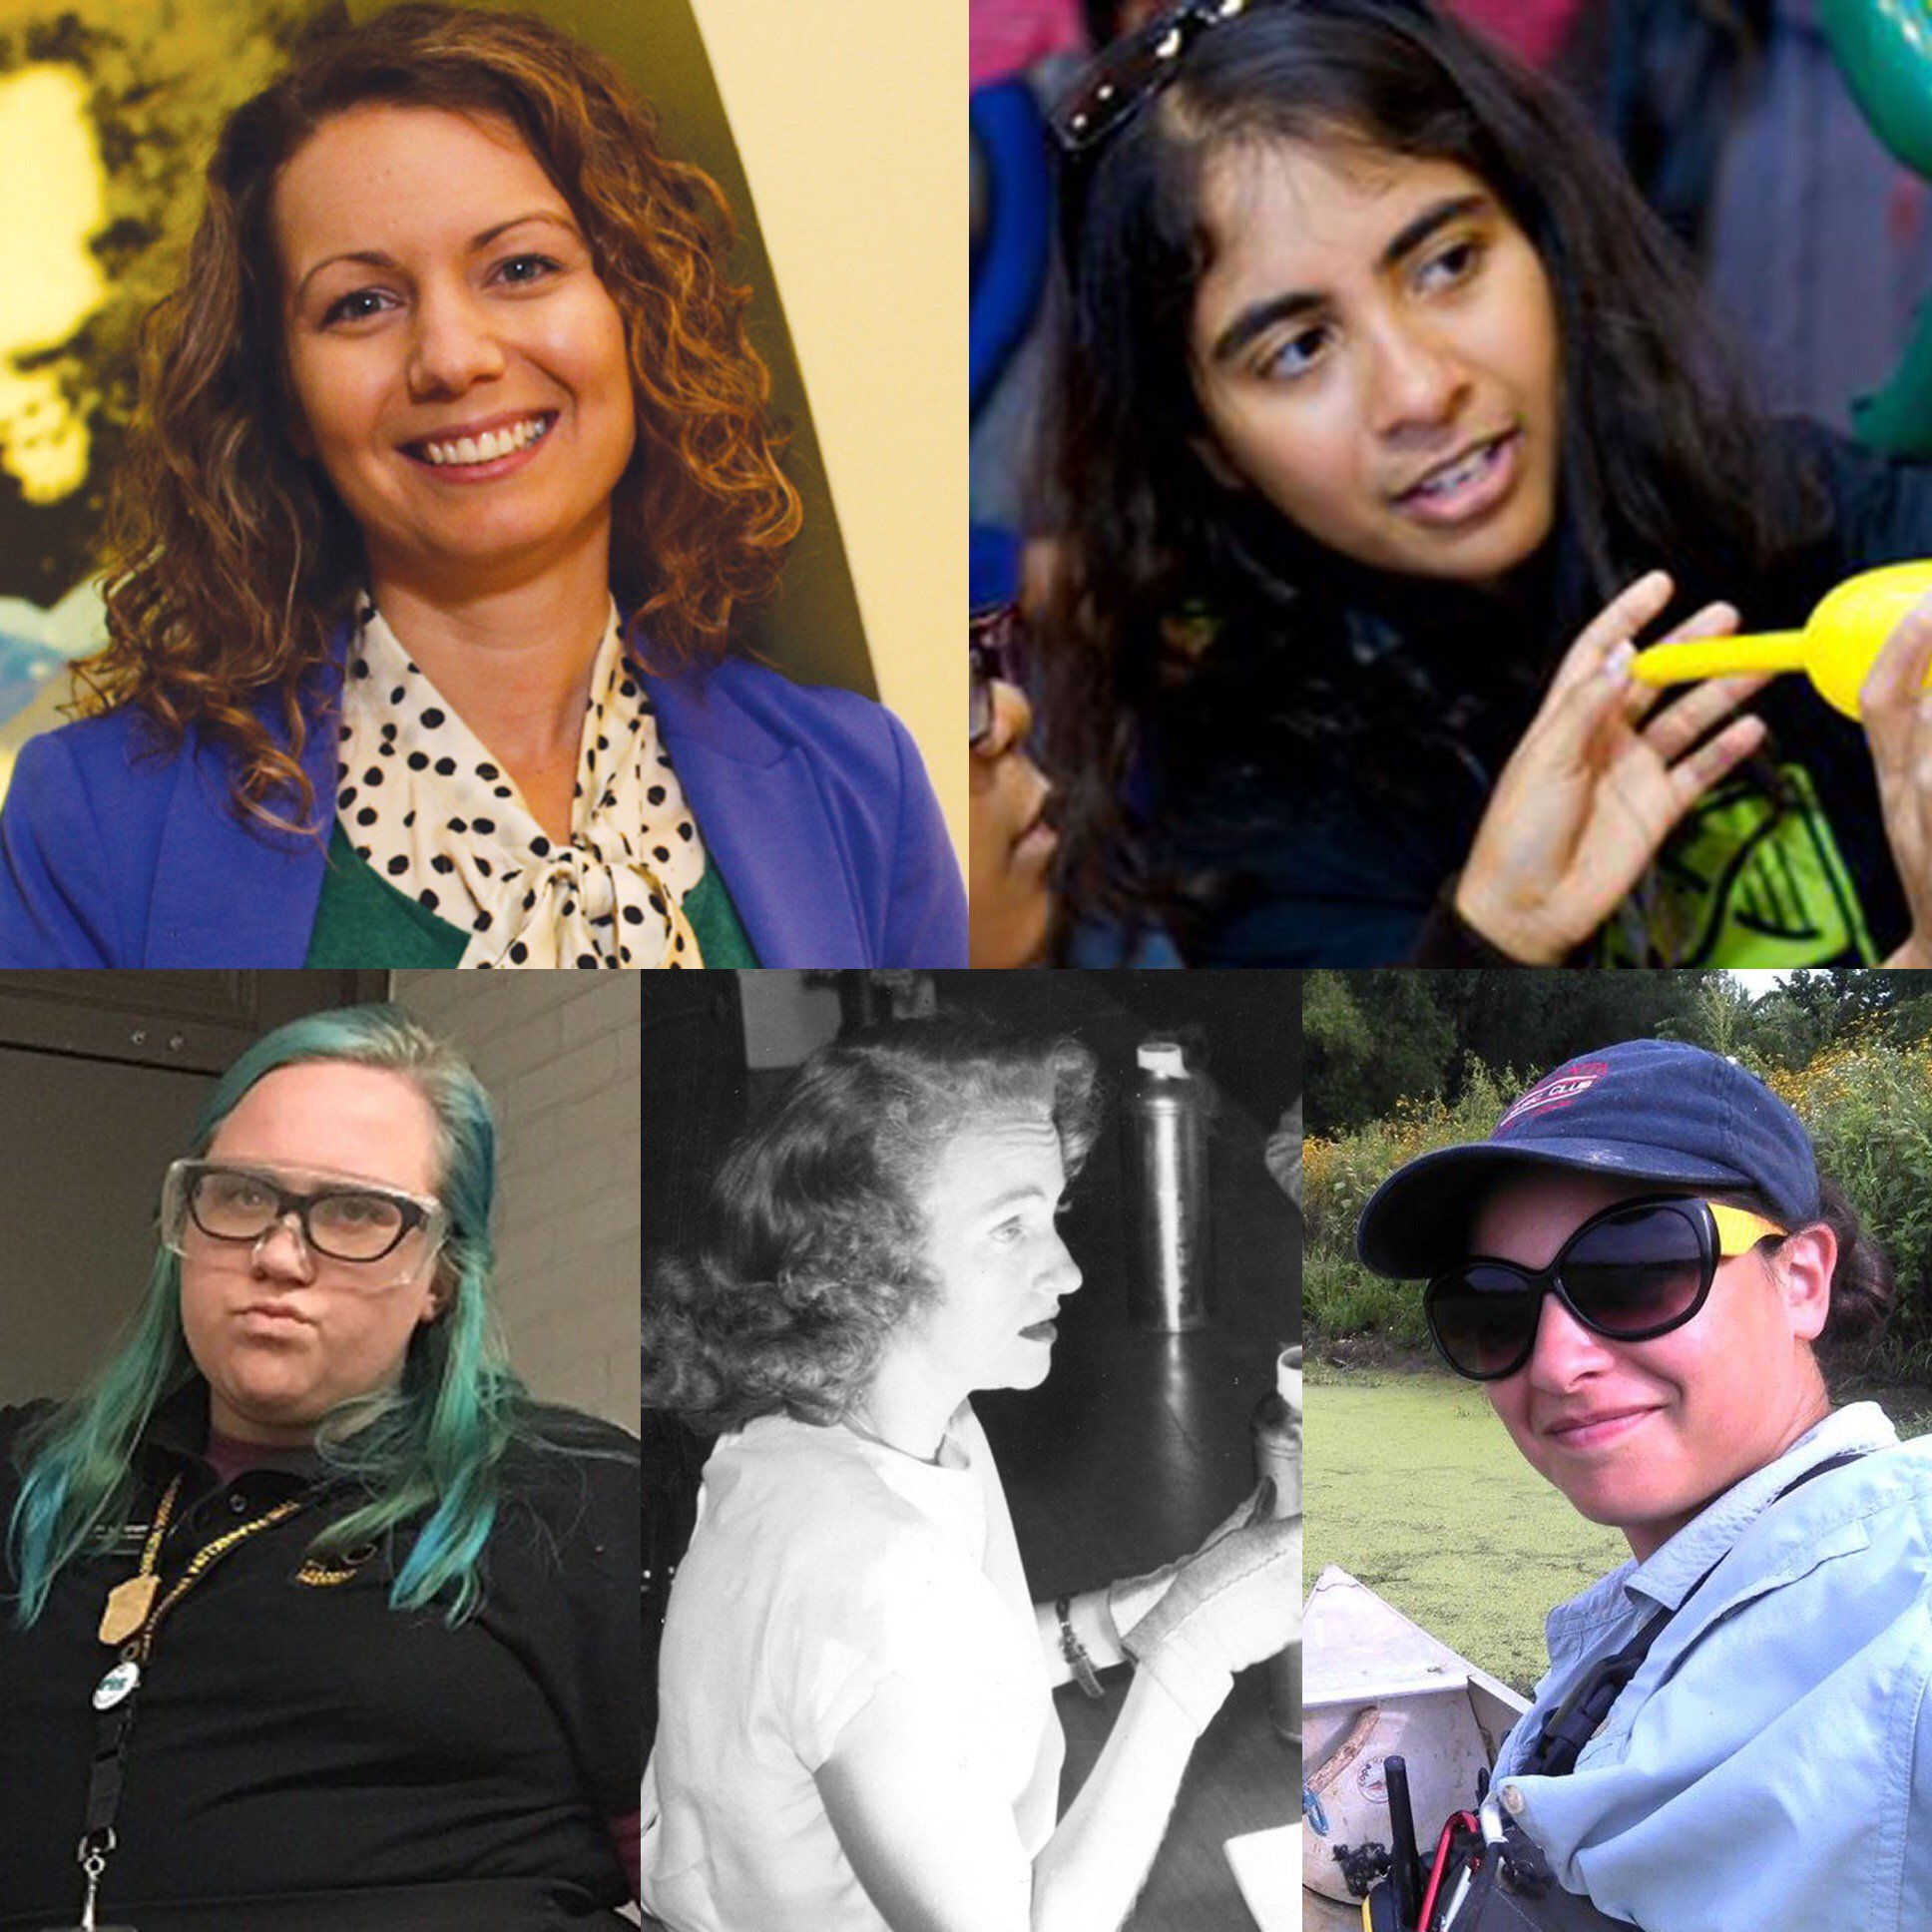 Do you know these 5 women of The Franklin Institute? Throughout March, we will celebrate #5WomenScientists each week https://t.co/Yu8RJjb7f5 https://t.co/1T0PugR99S